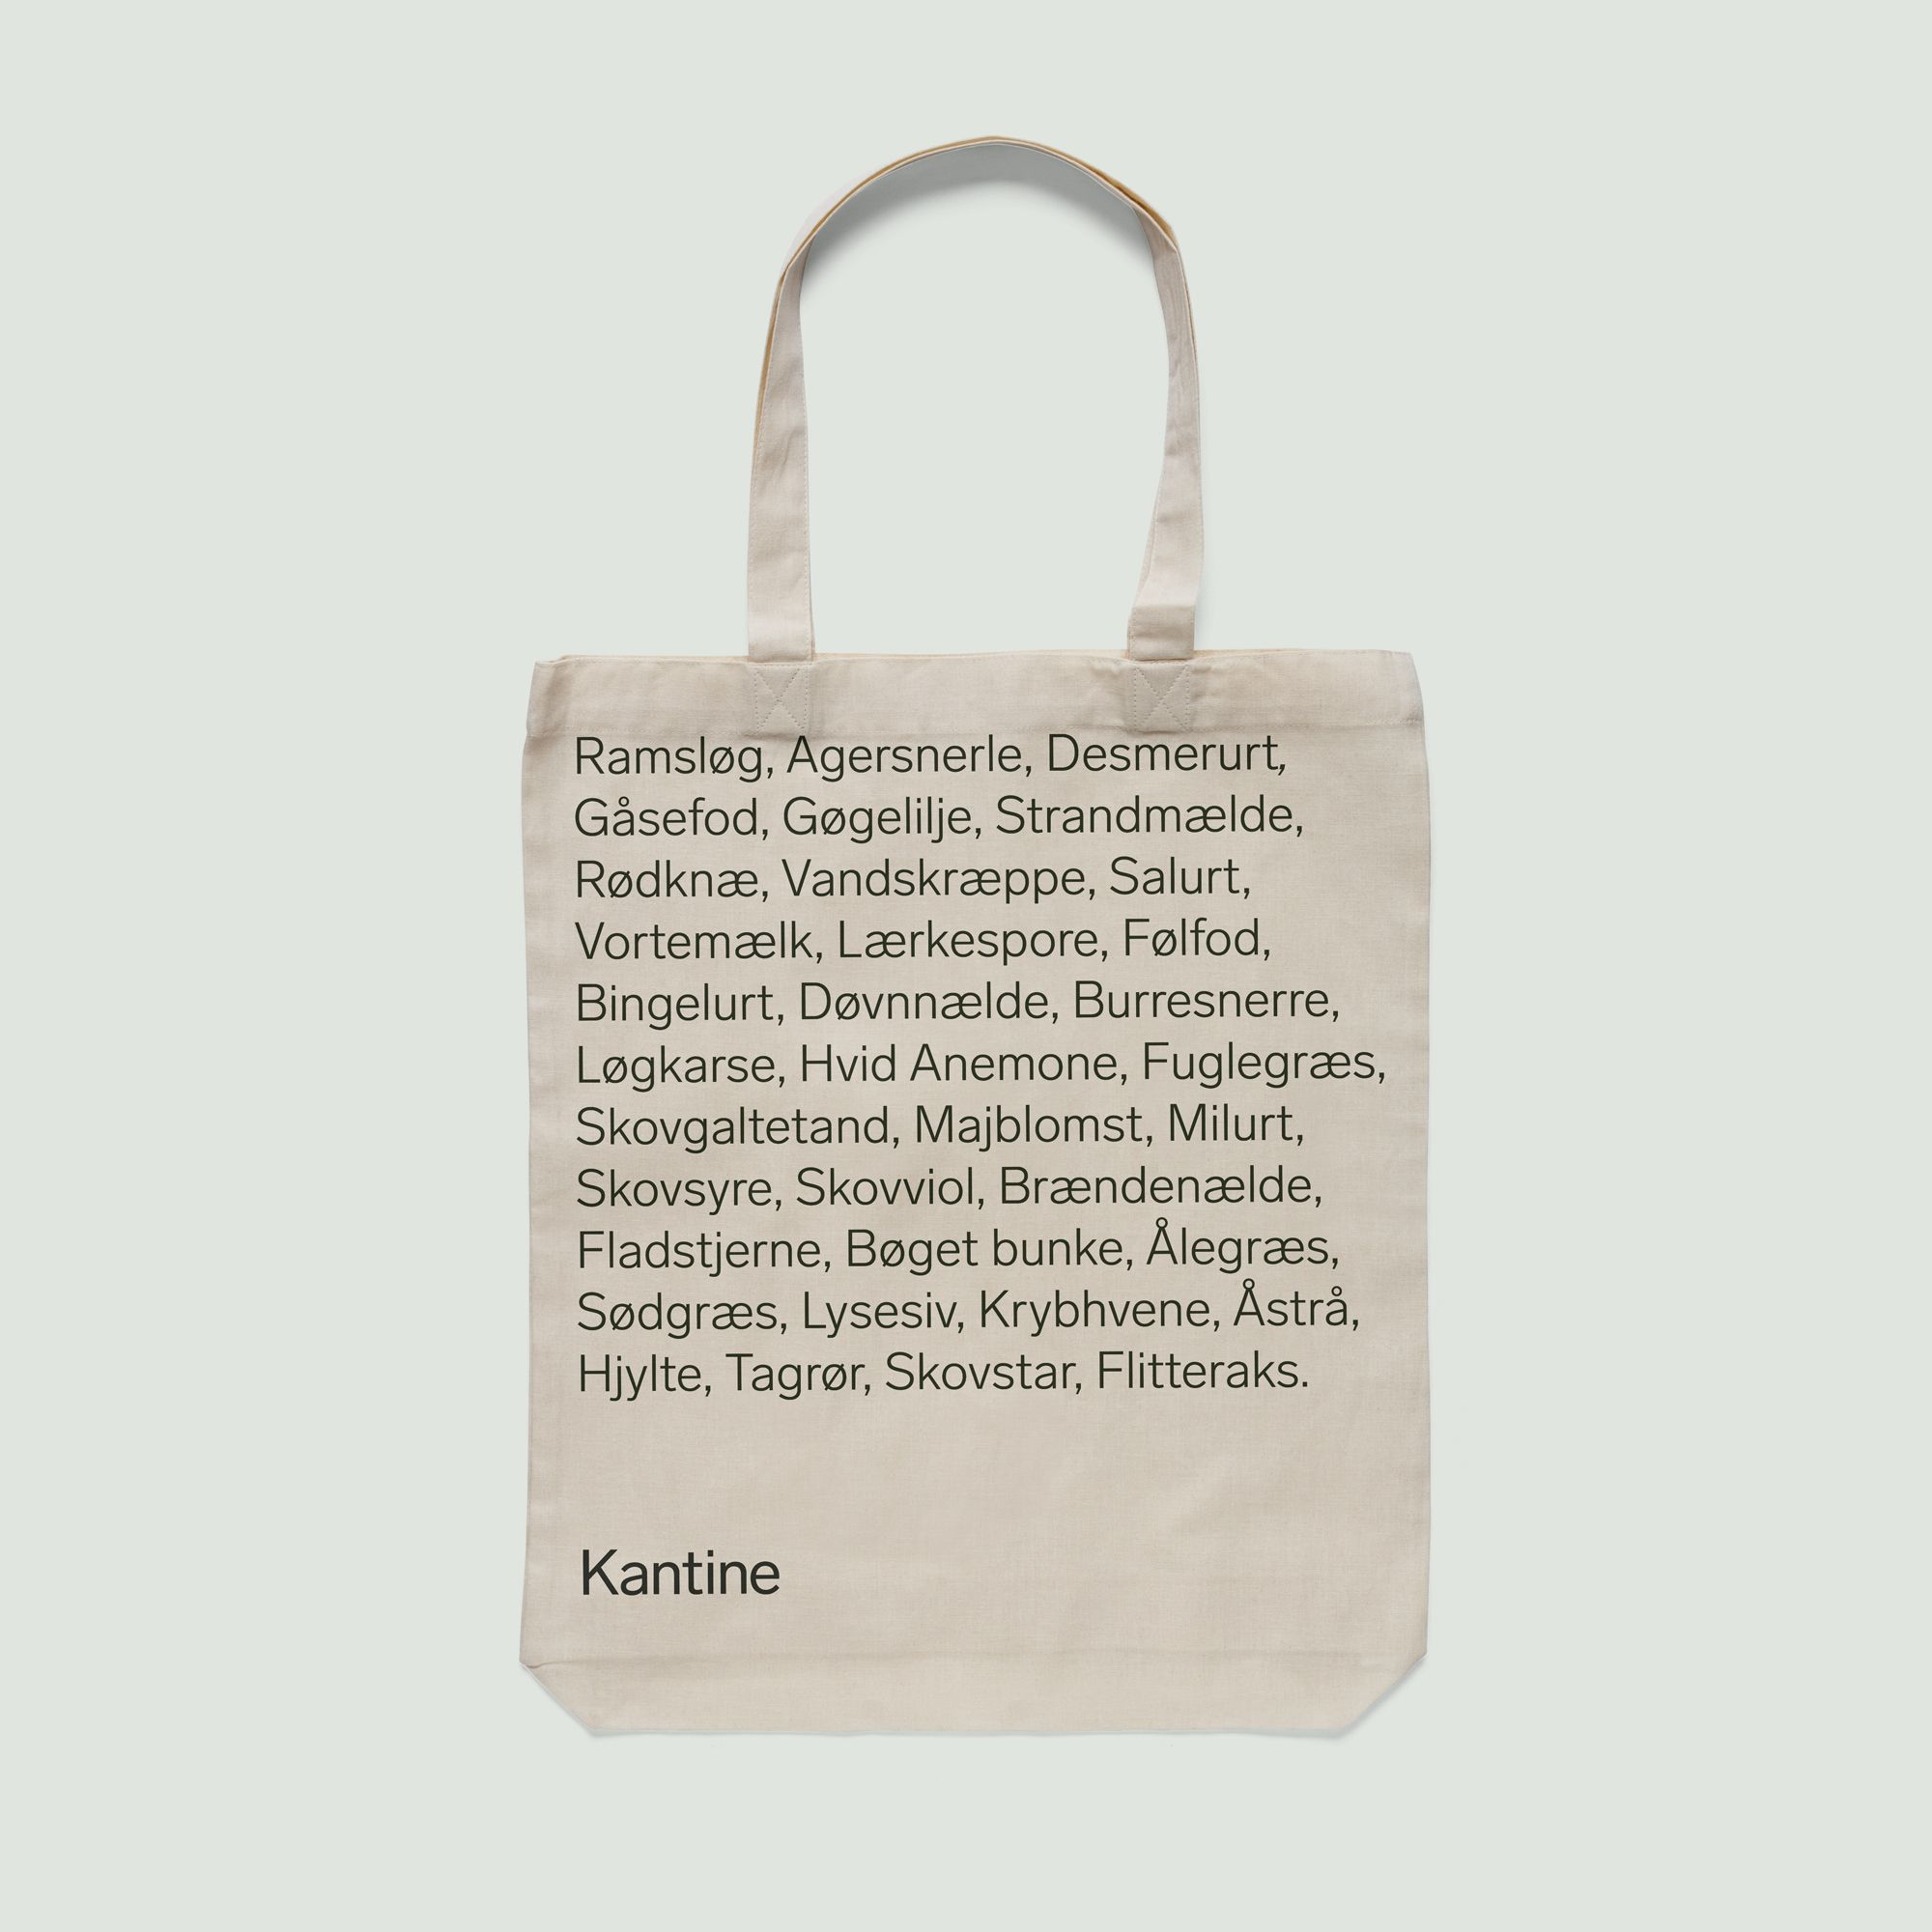 andreas_weiland_kantine_tote